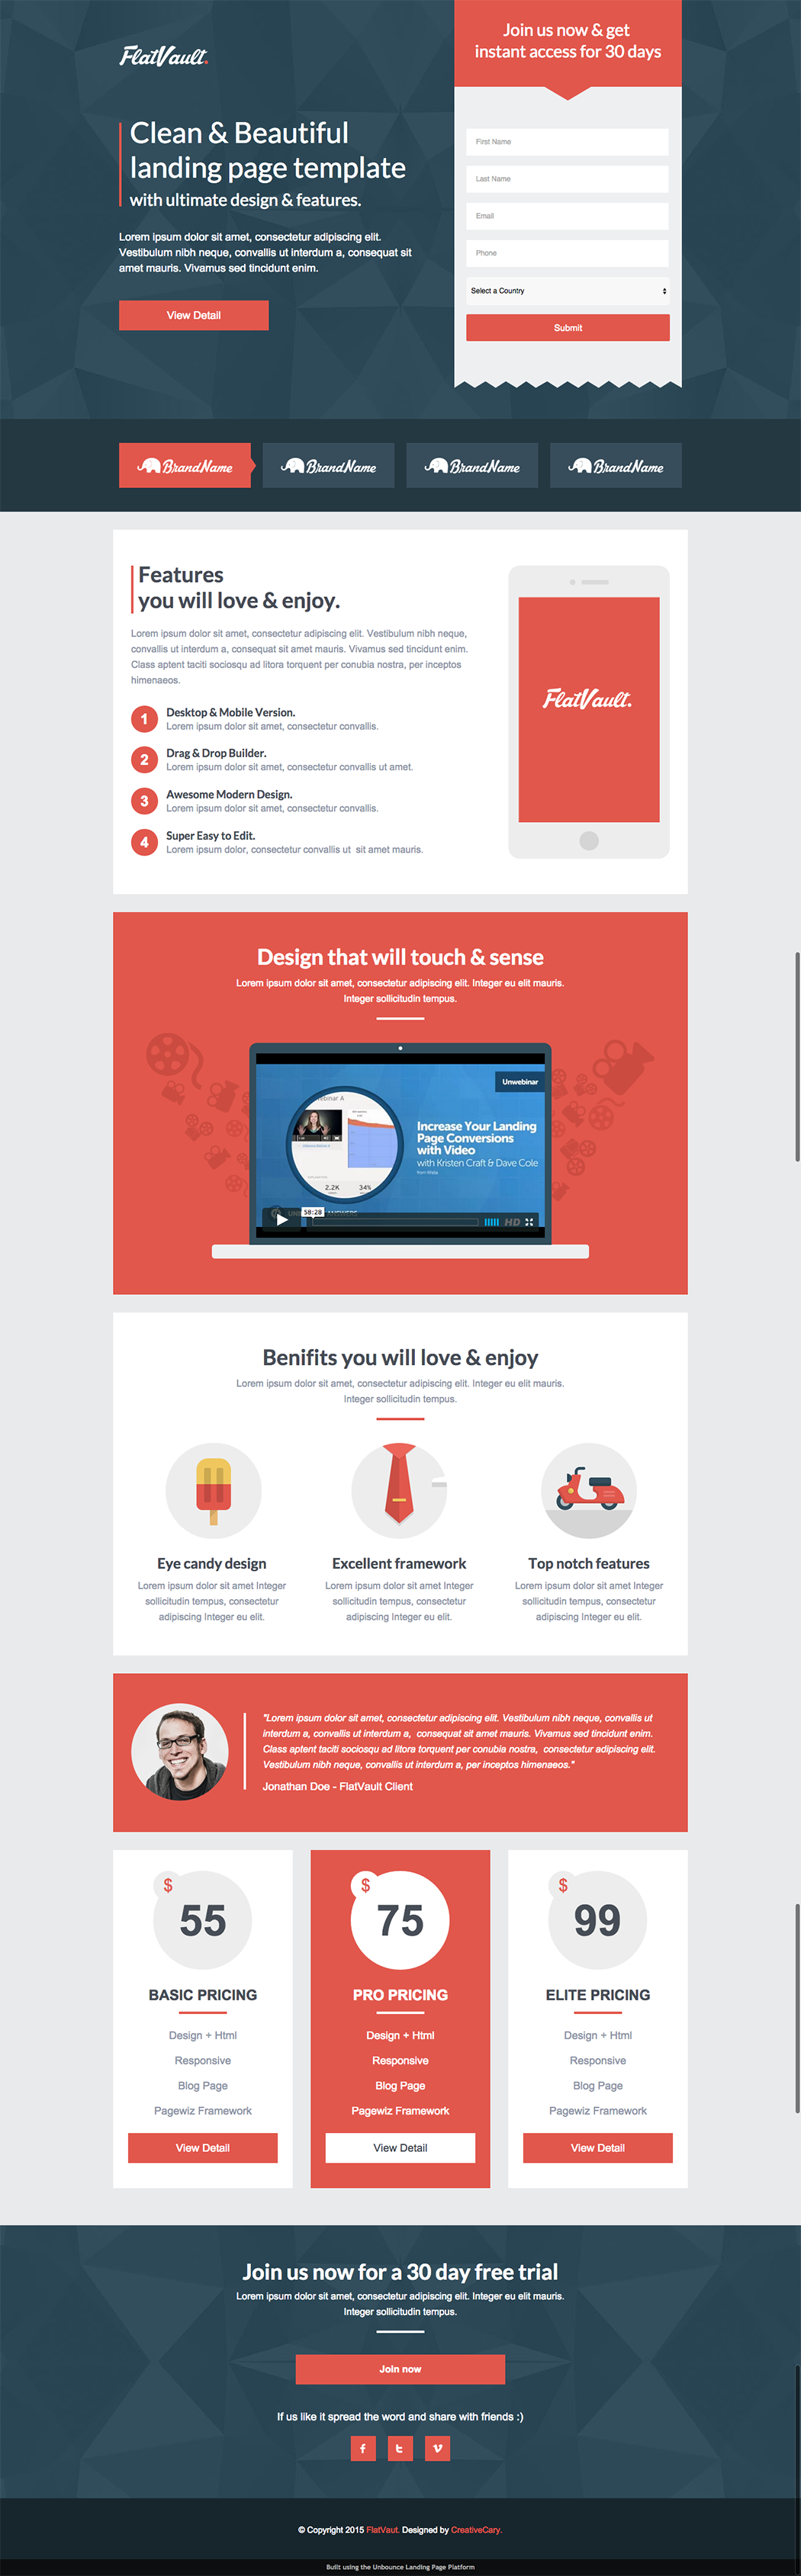 8 Mobile-Friendly Landing Page Templates Designed With Love